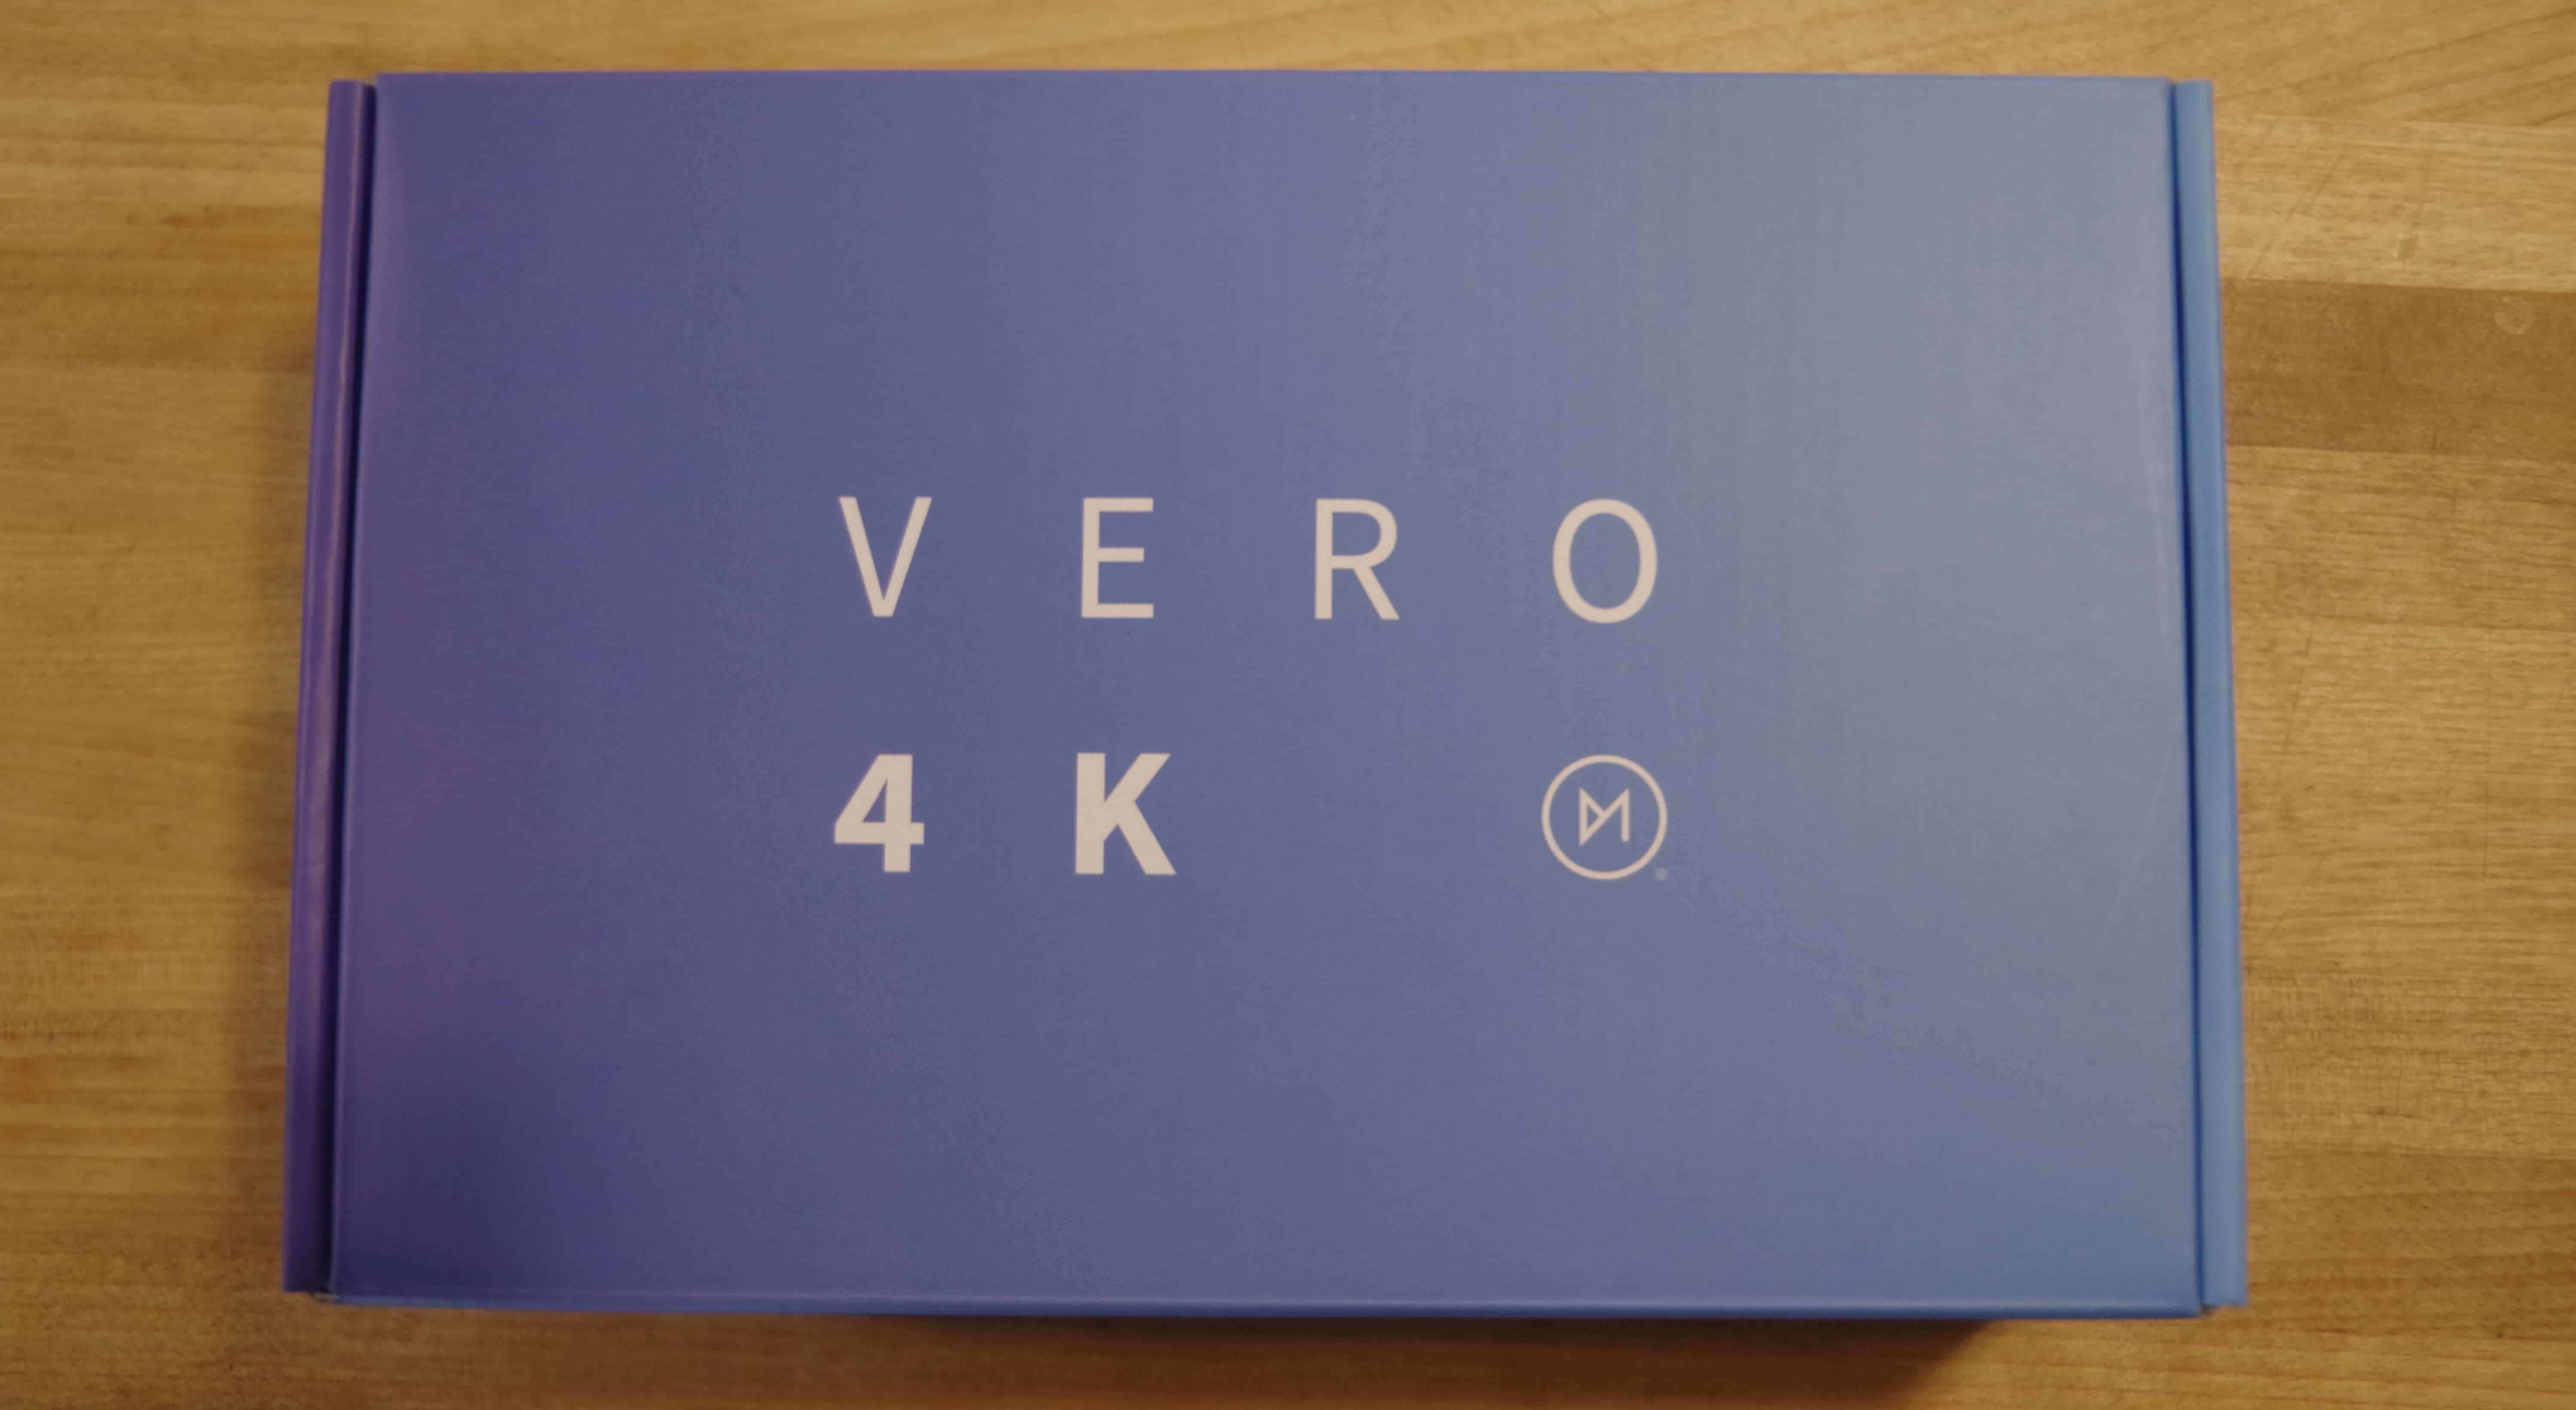 OSMC Vero 4K review: One of the best legal Kodi boxes available